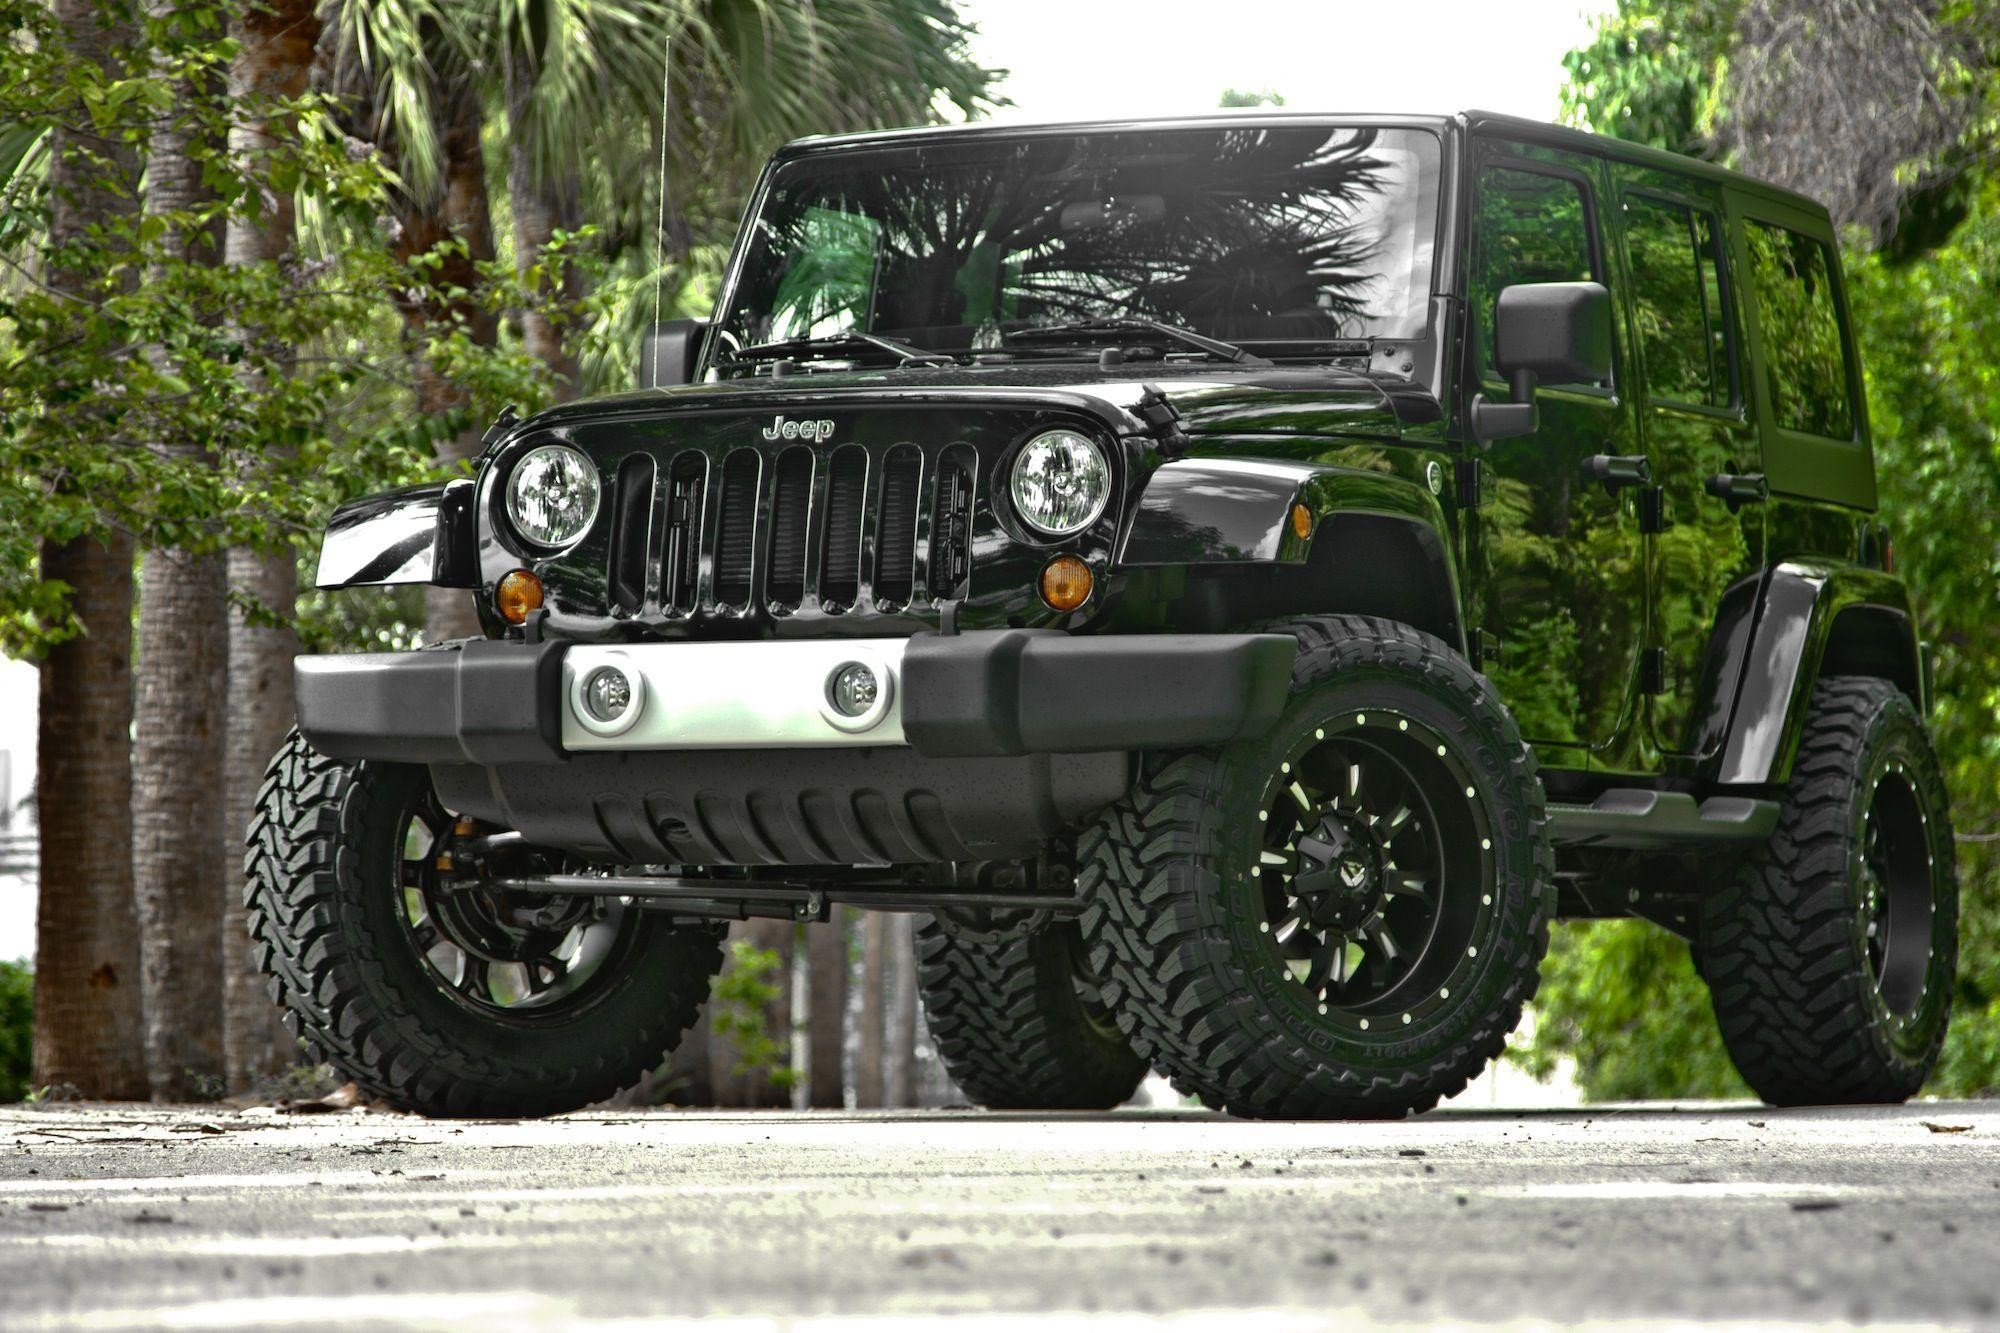 Res: 2000x1333, Jeep Wrangler Grey Desktop HD Wallpaper